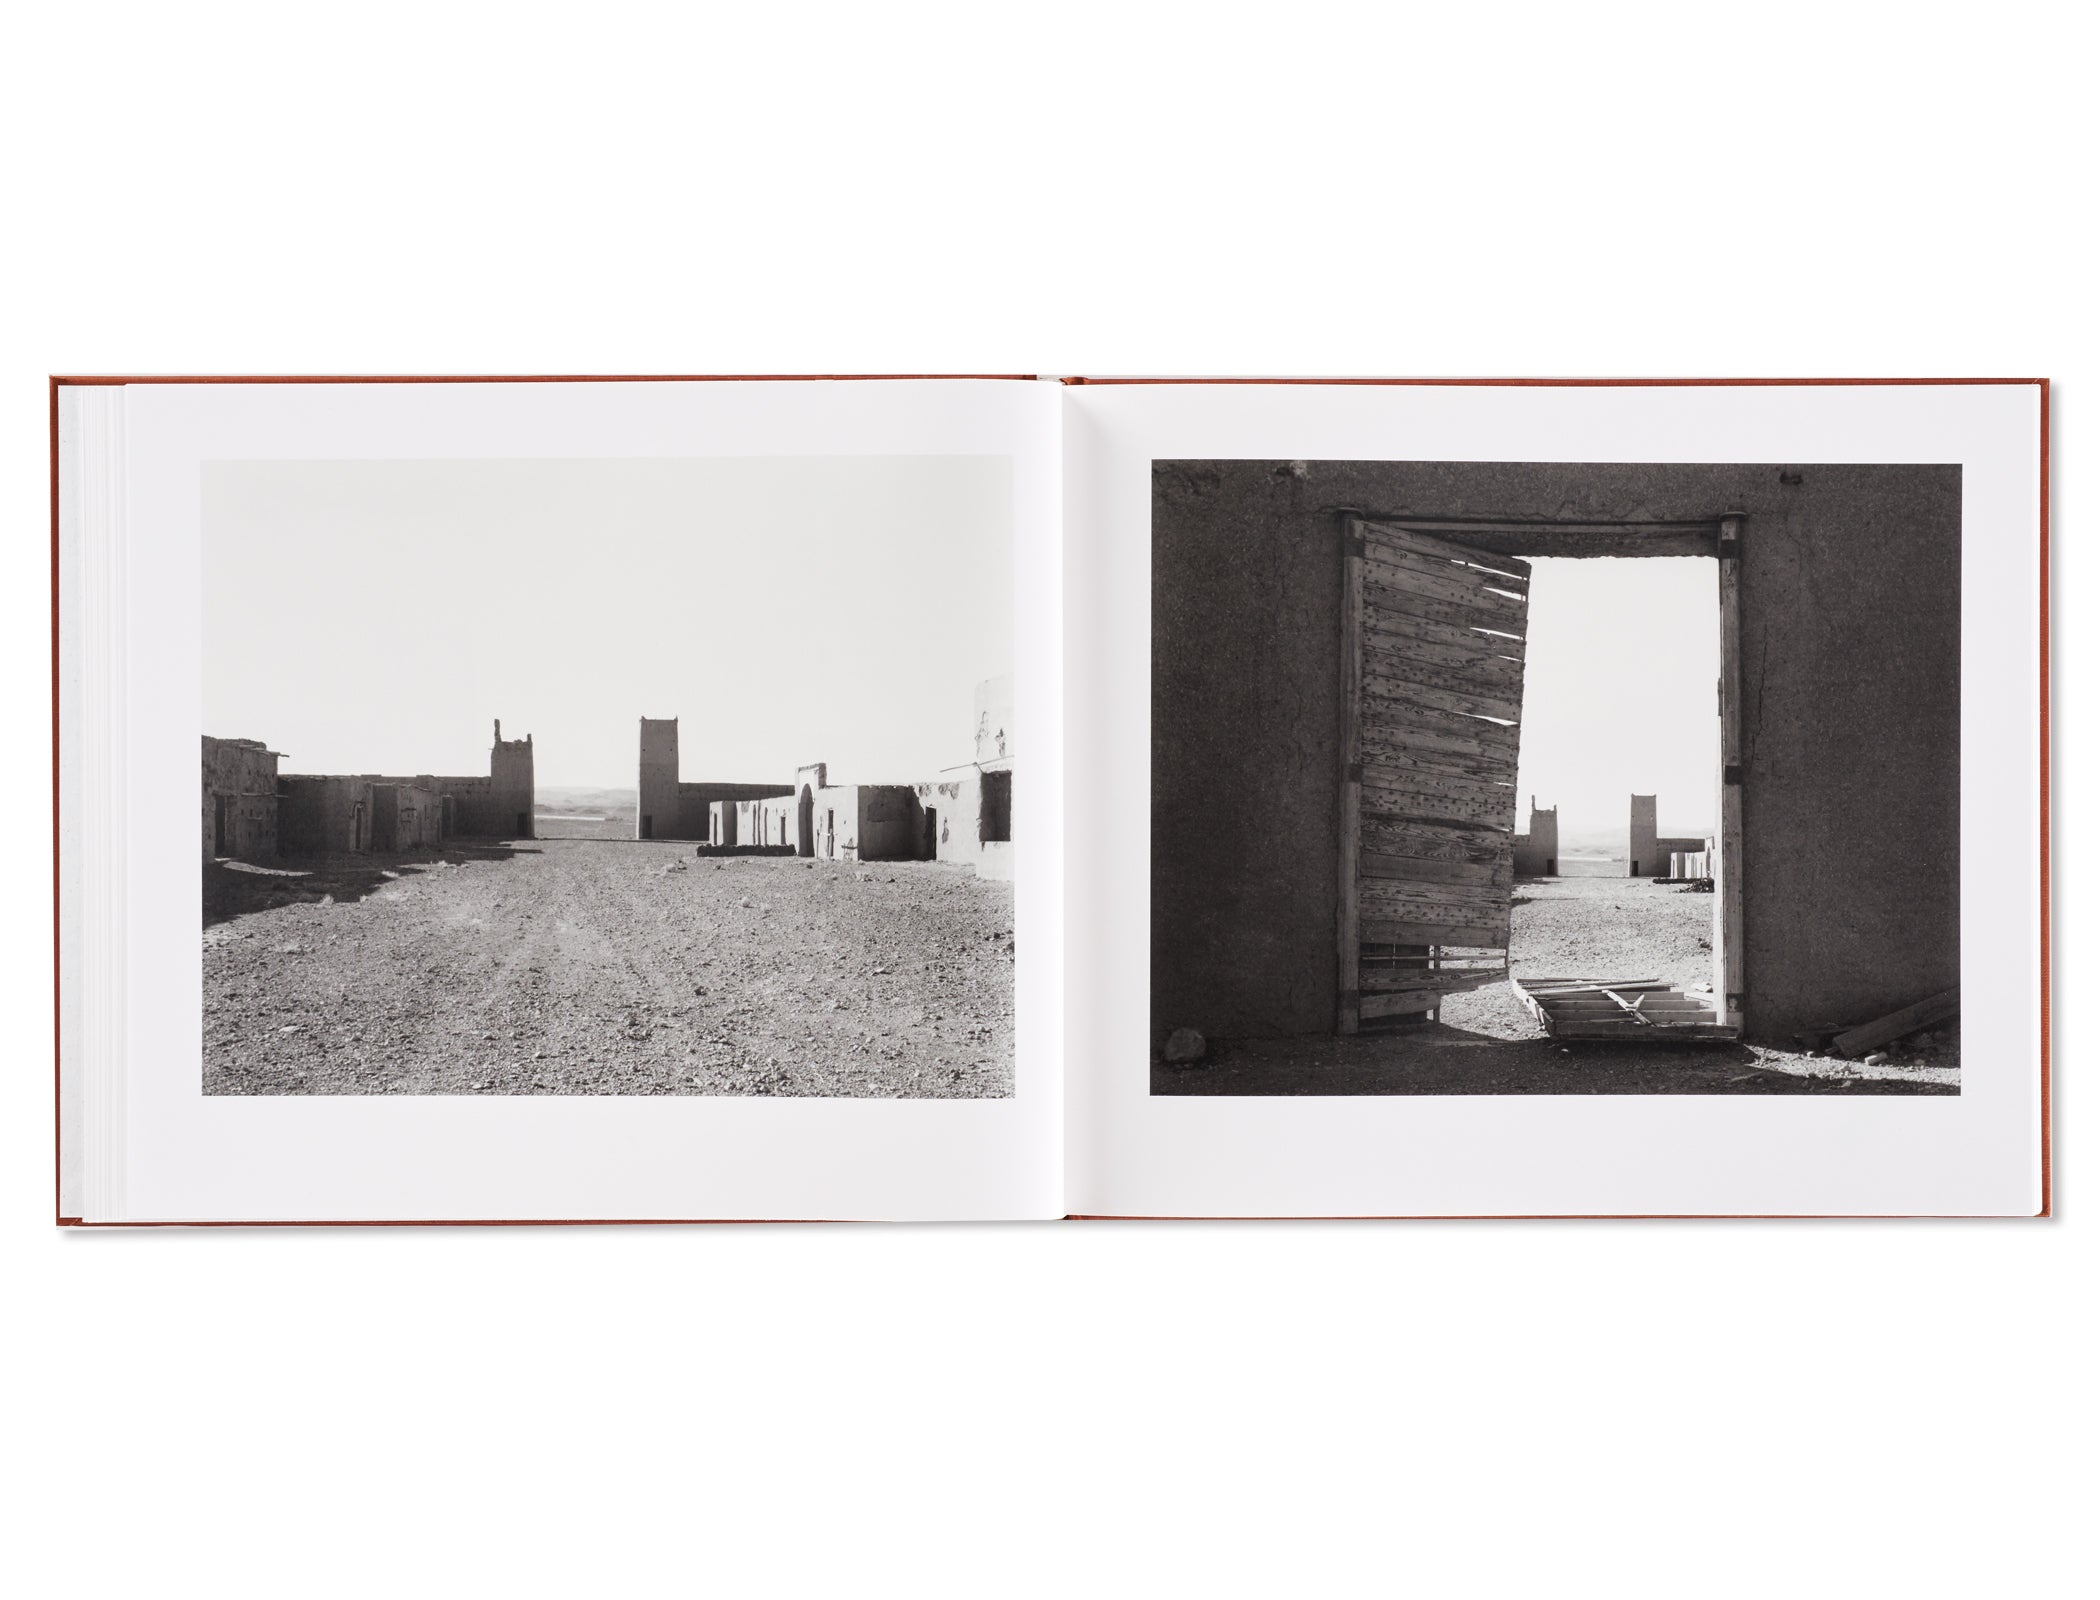 OUARZAZATE by Mark Ruwedel [SIGNED]